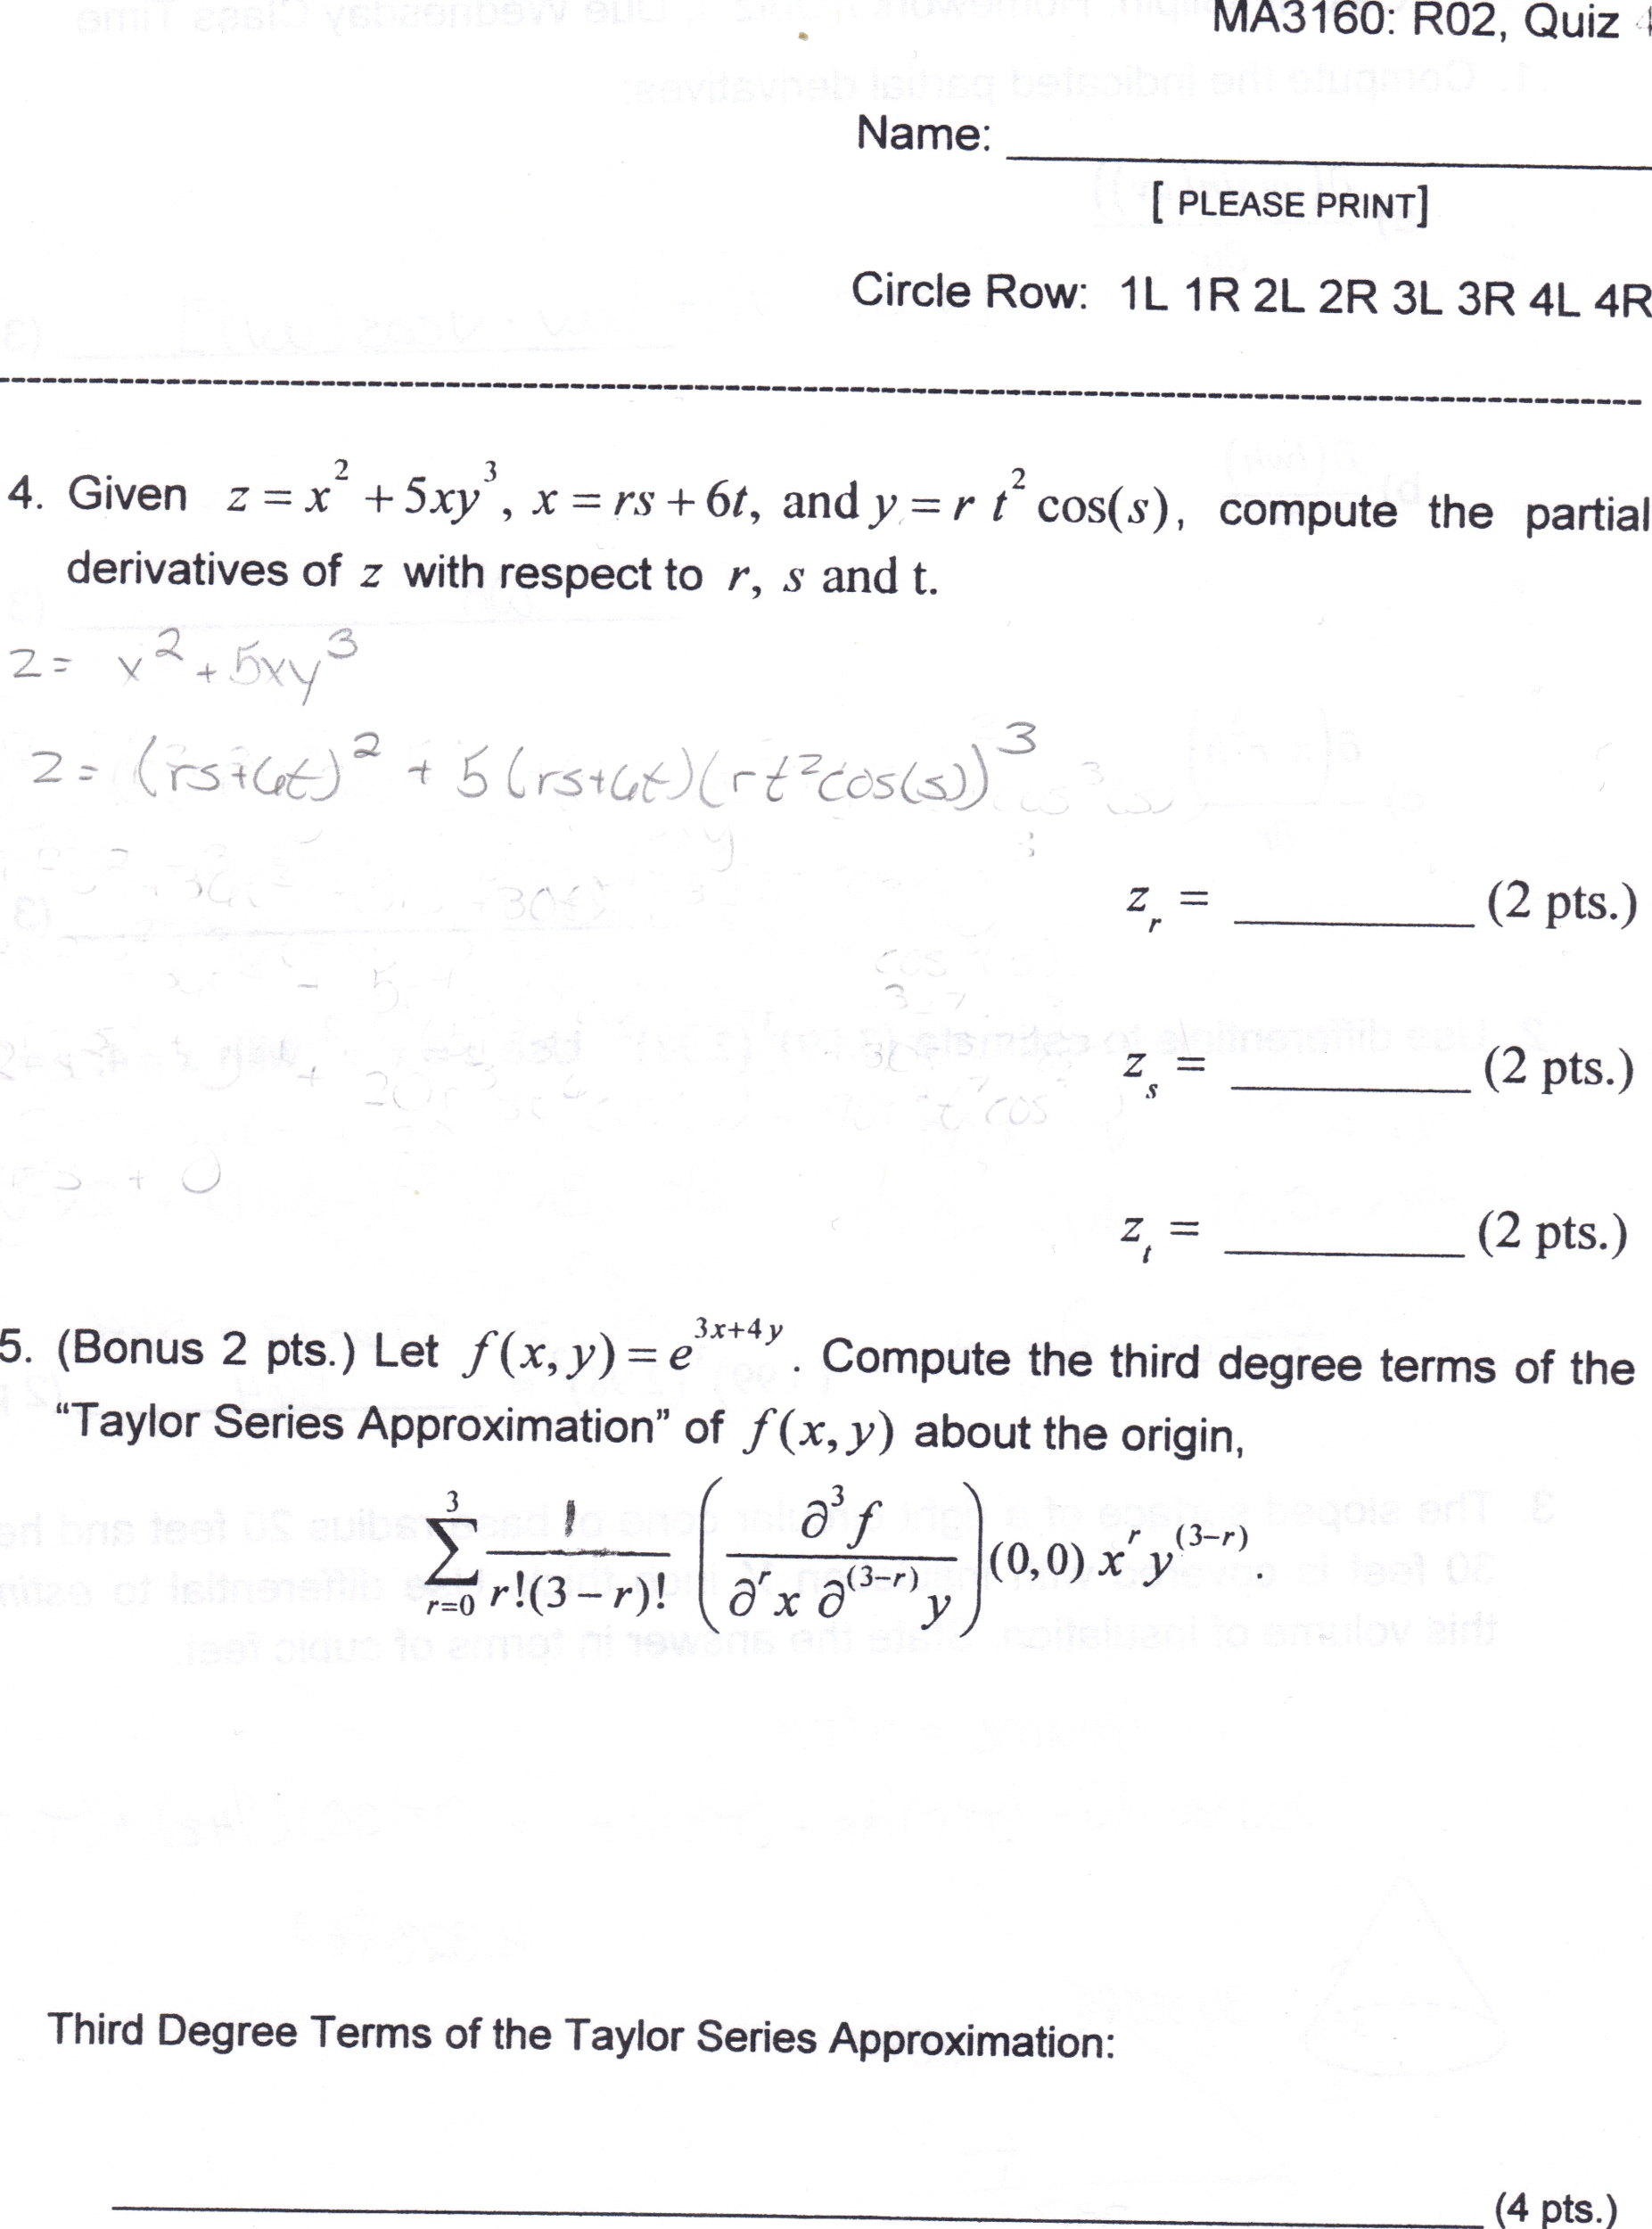 Rs coursework help